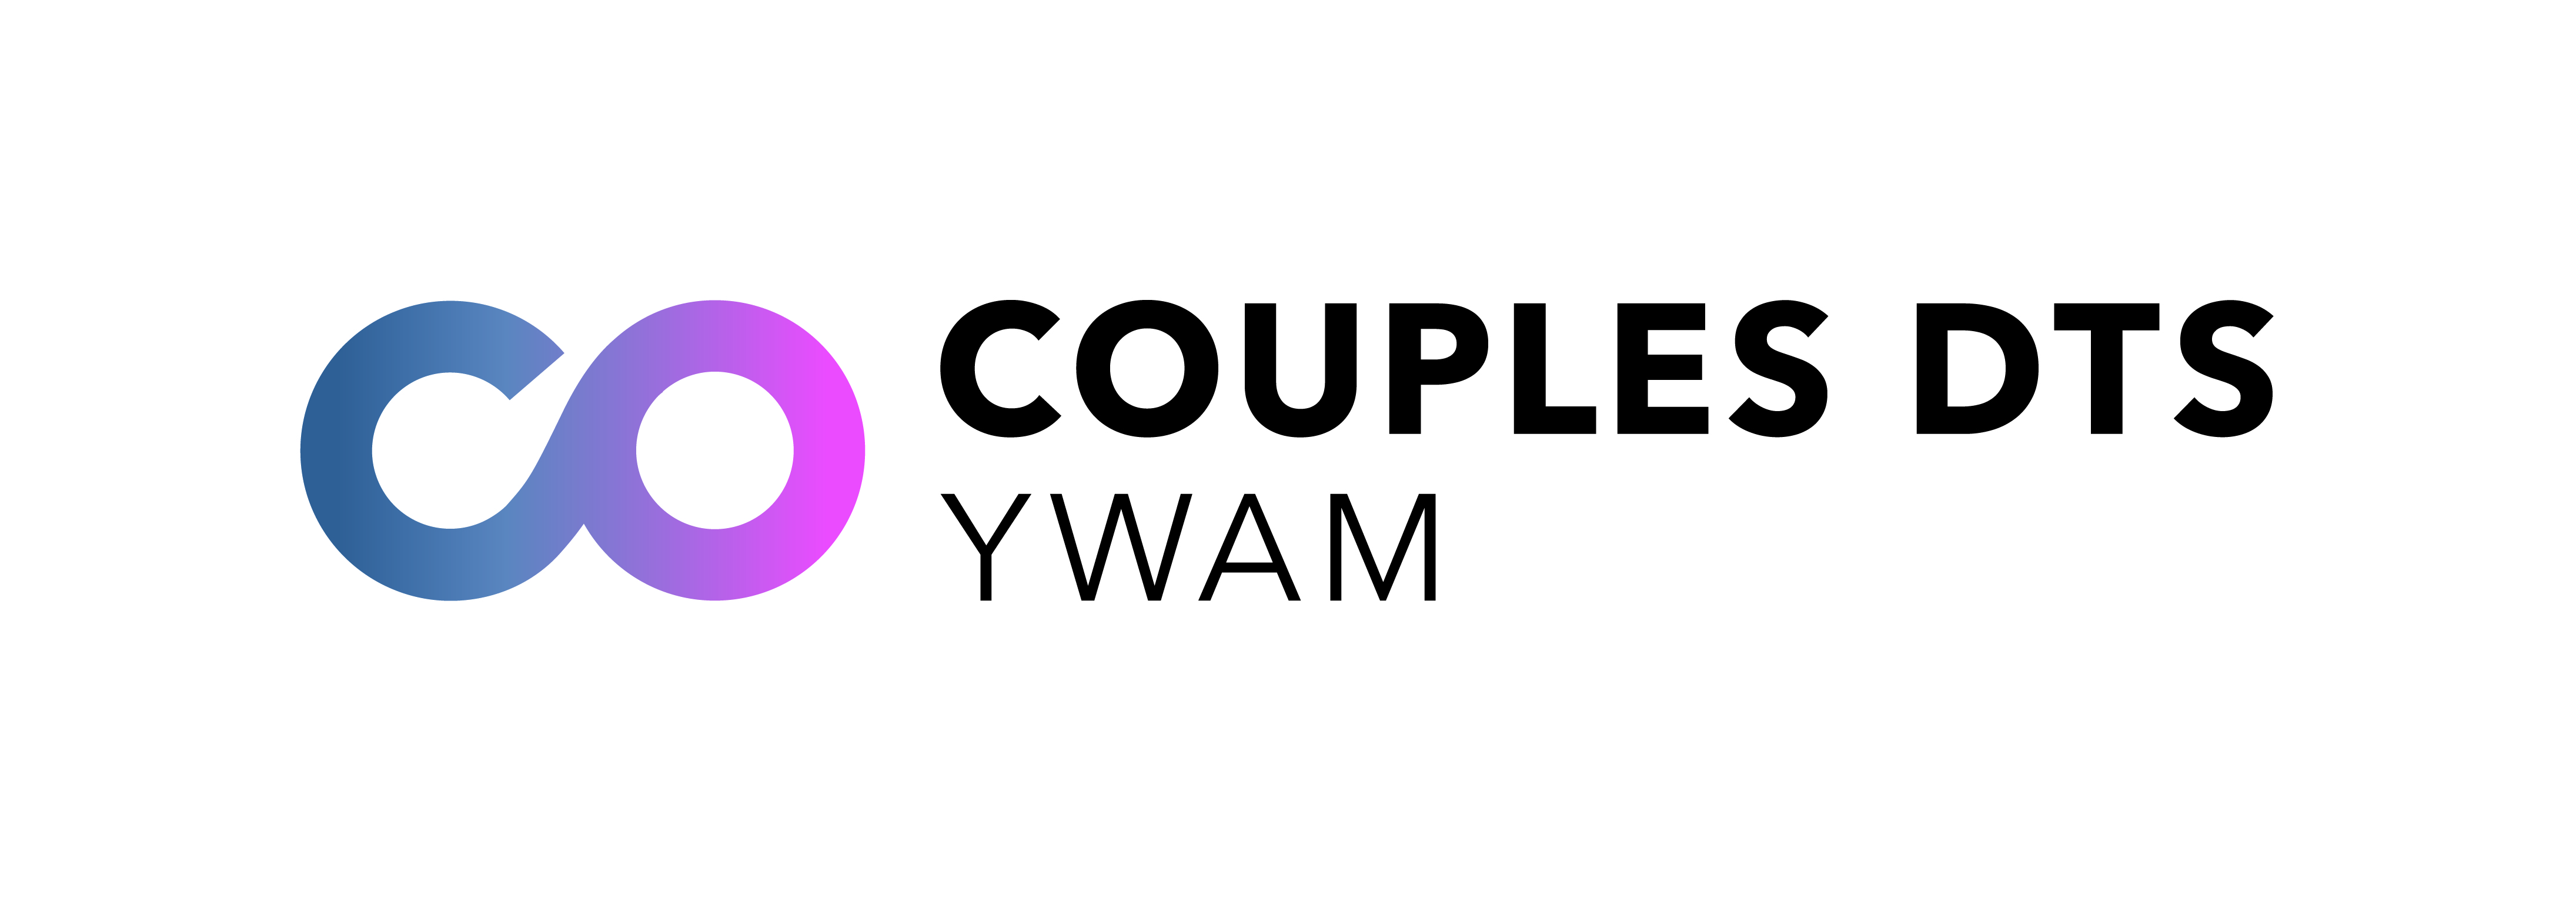 Couples DTS, Finland (2018) – YWAM Family Ministries